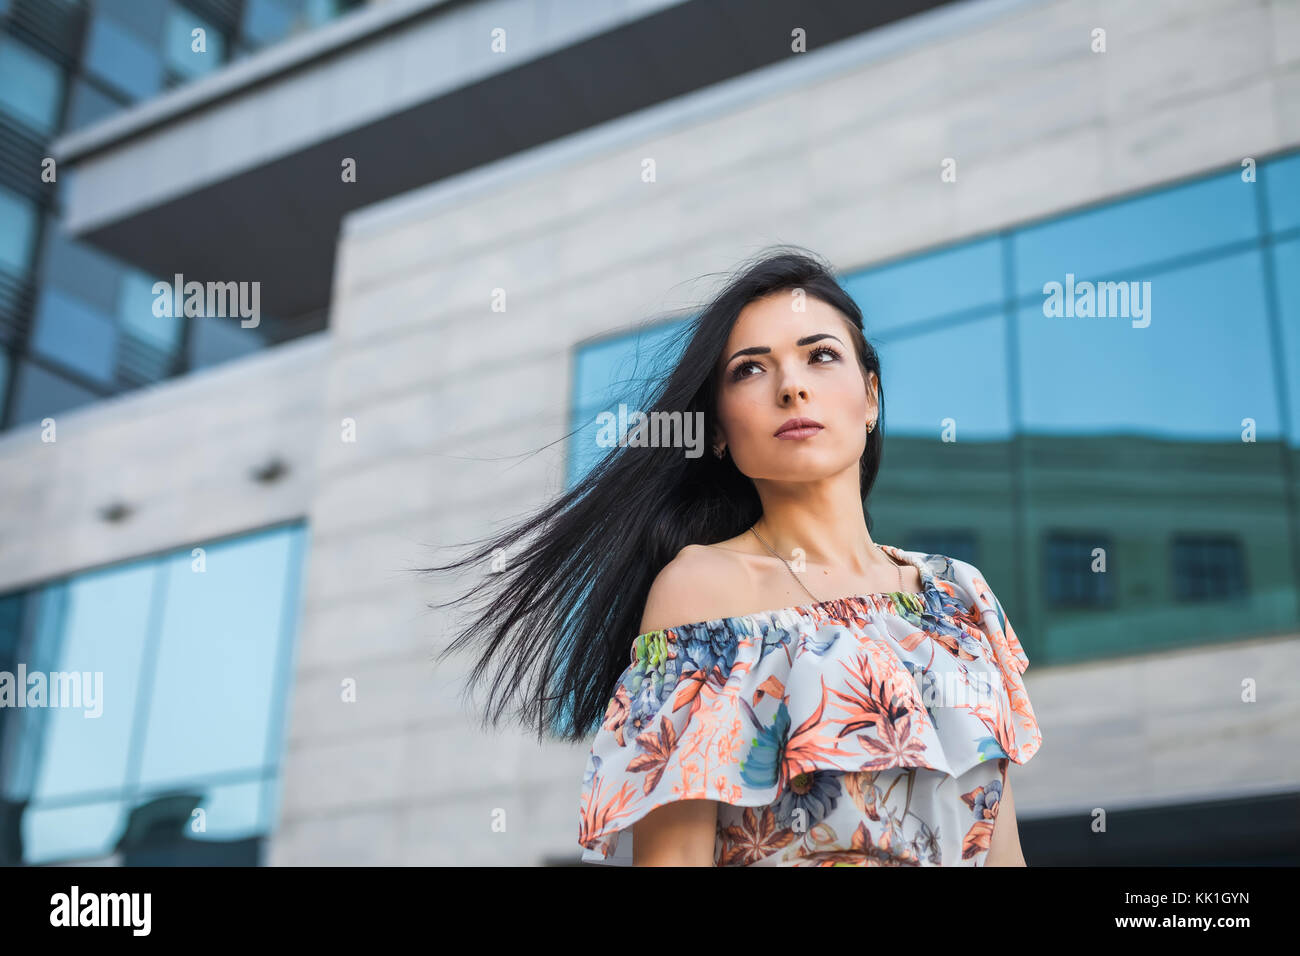 thoughtfull female in the city - Stock Image